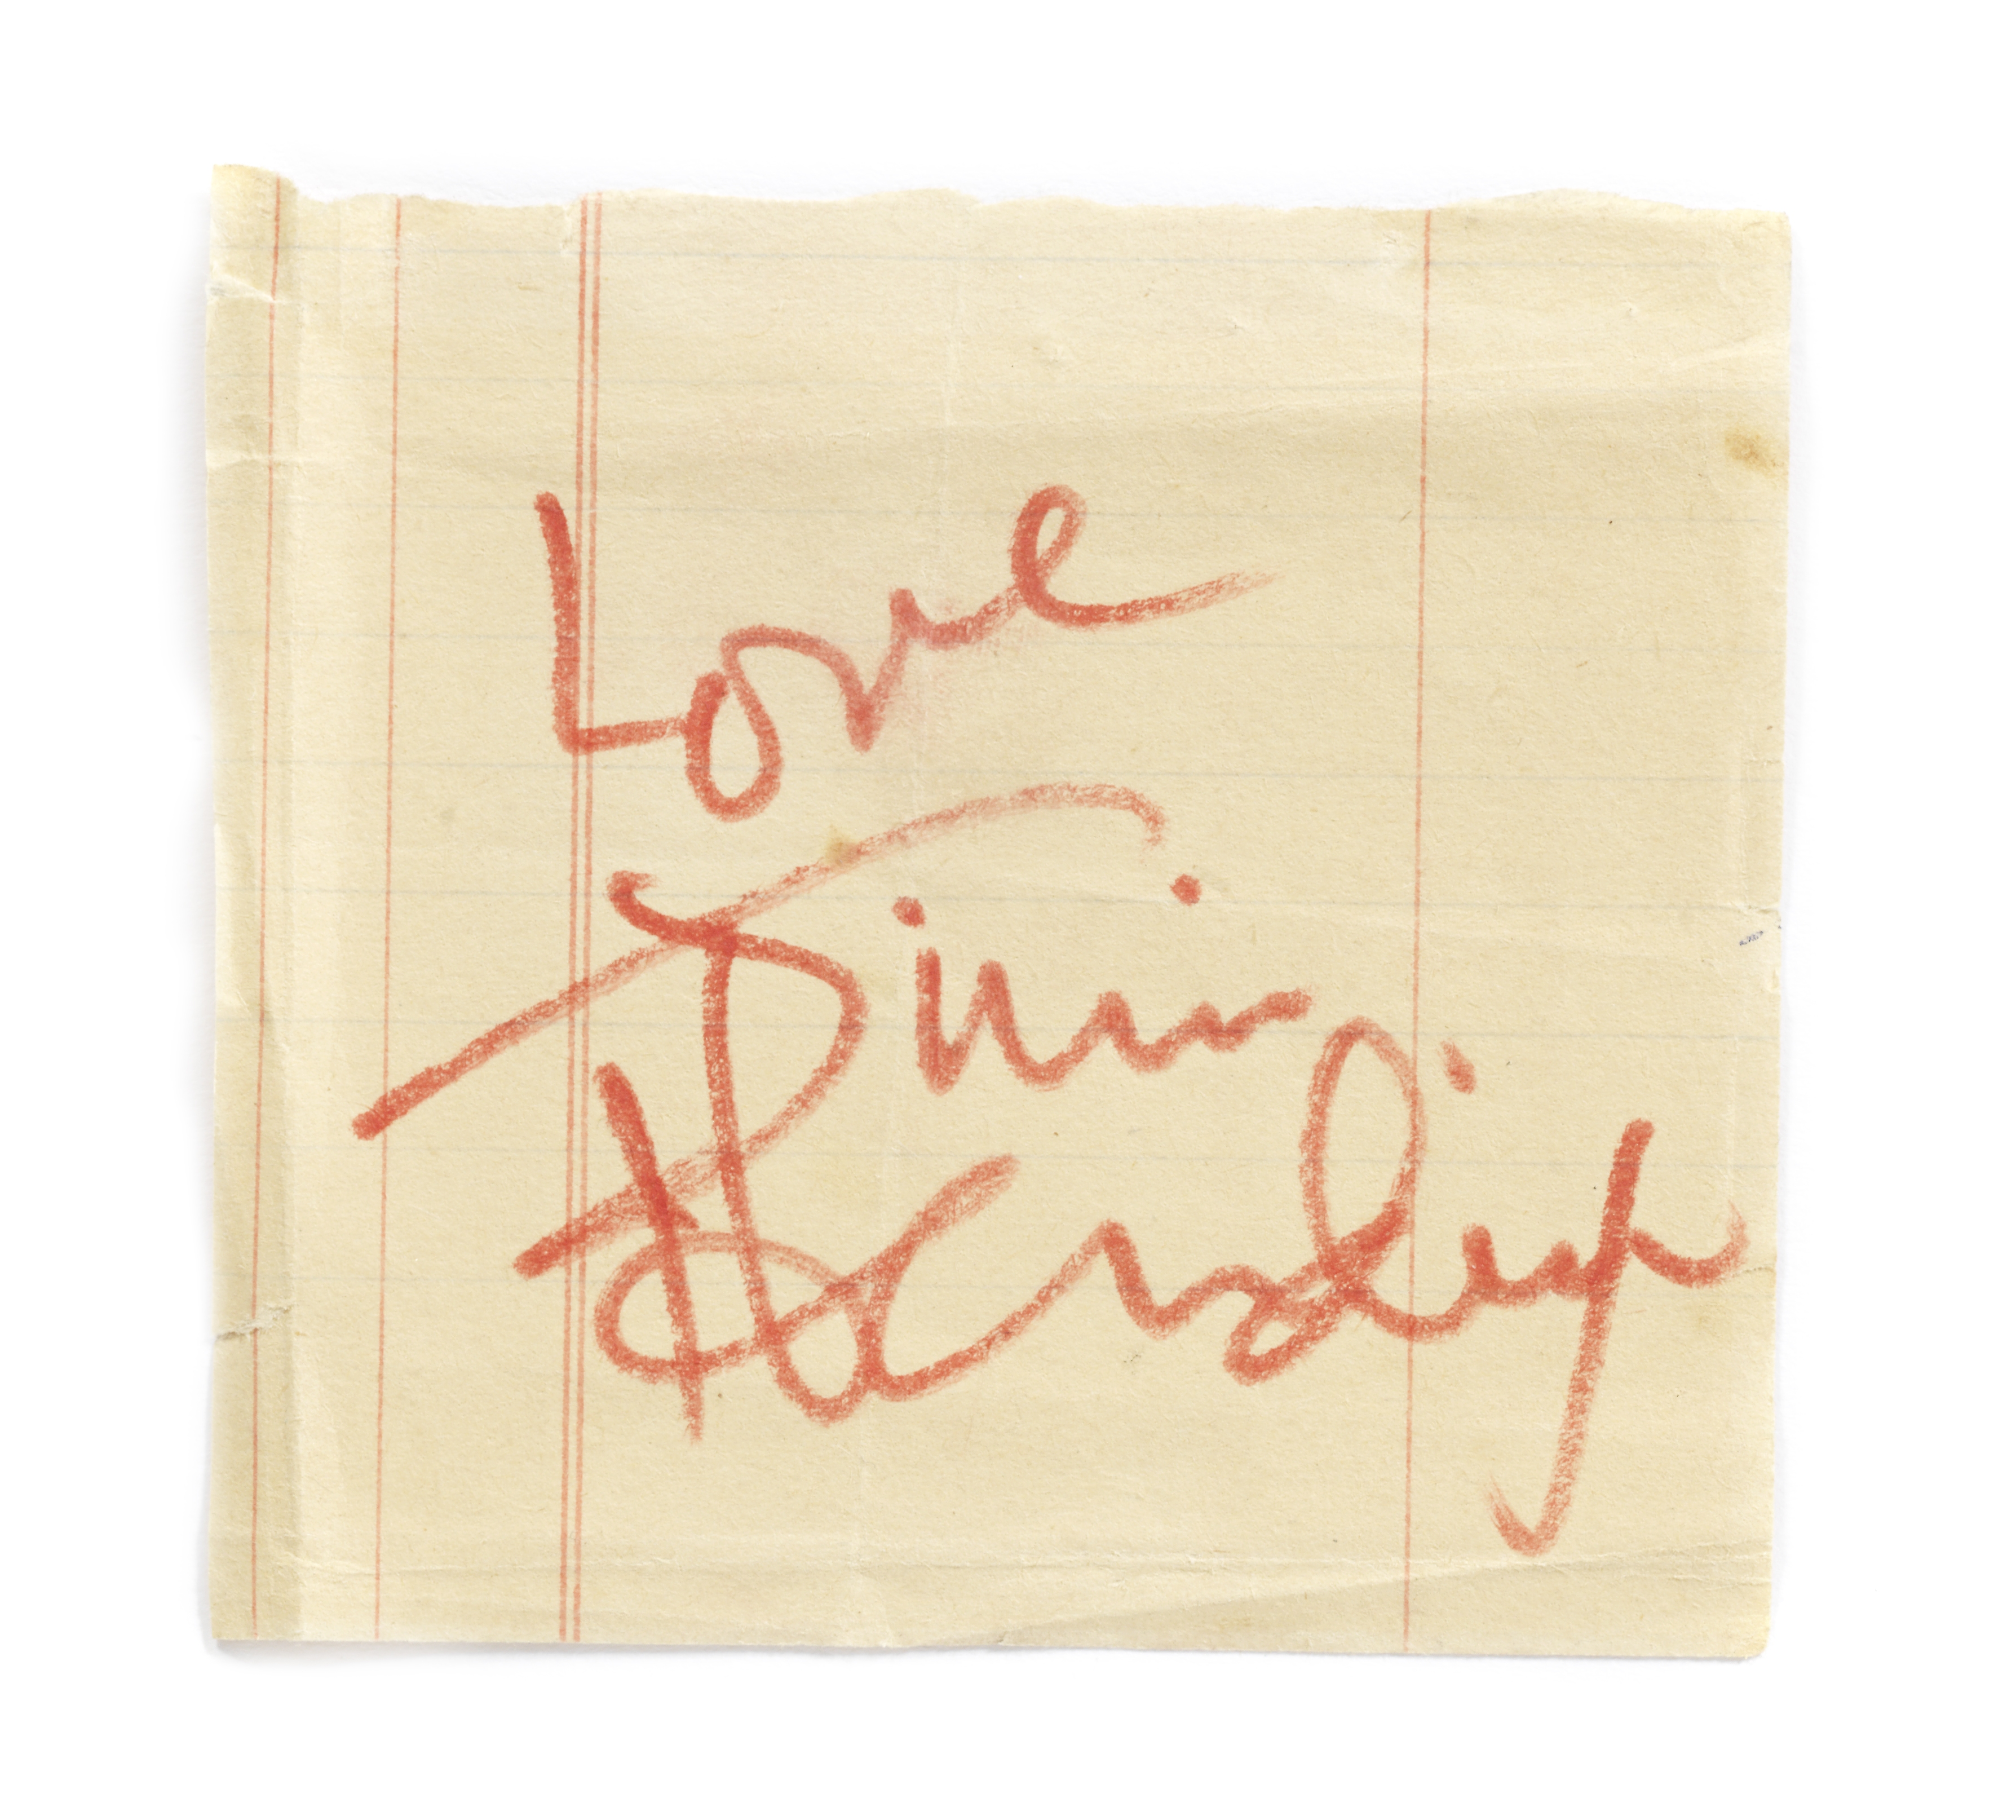 Lot 51 - Jimi Hendrix: An autograph, probably 1967,